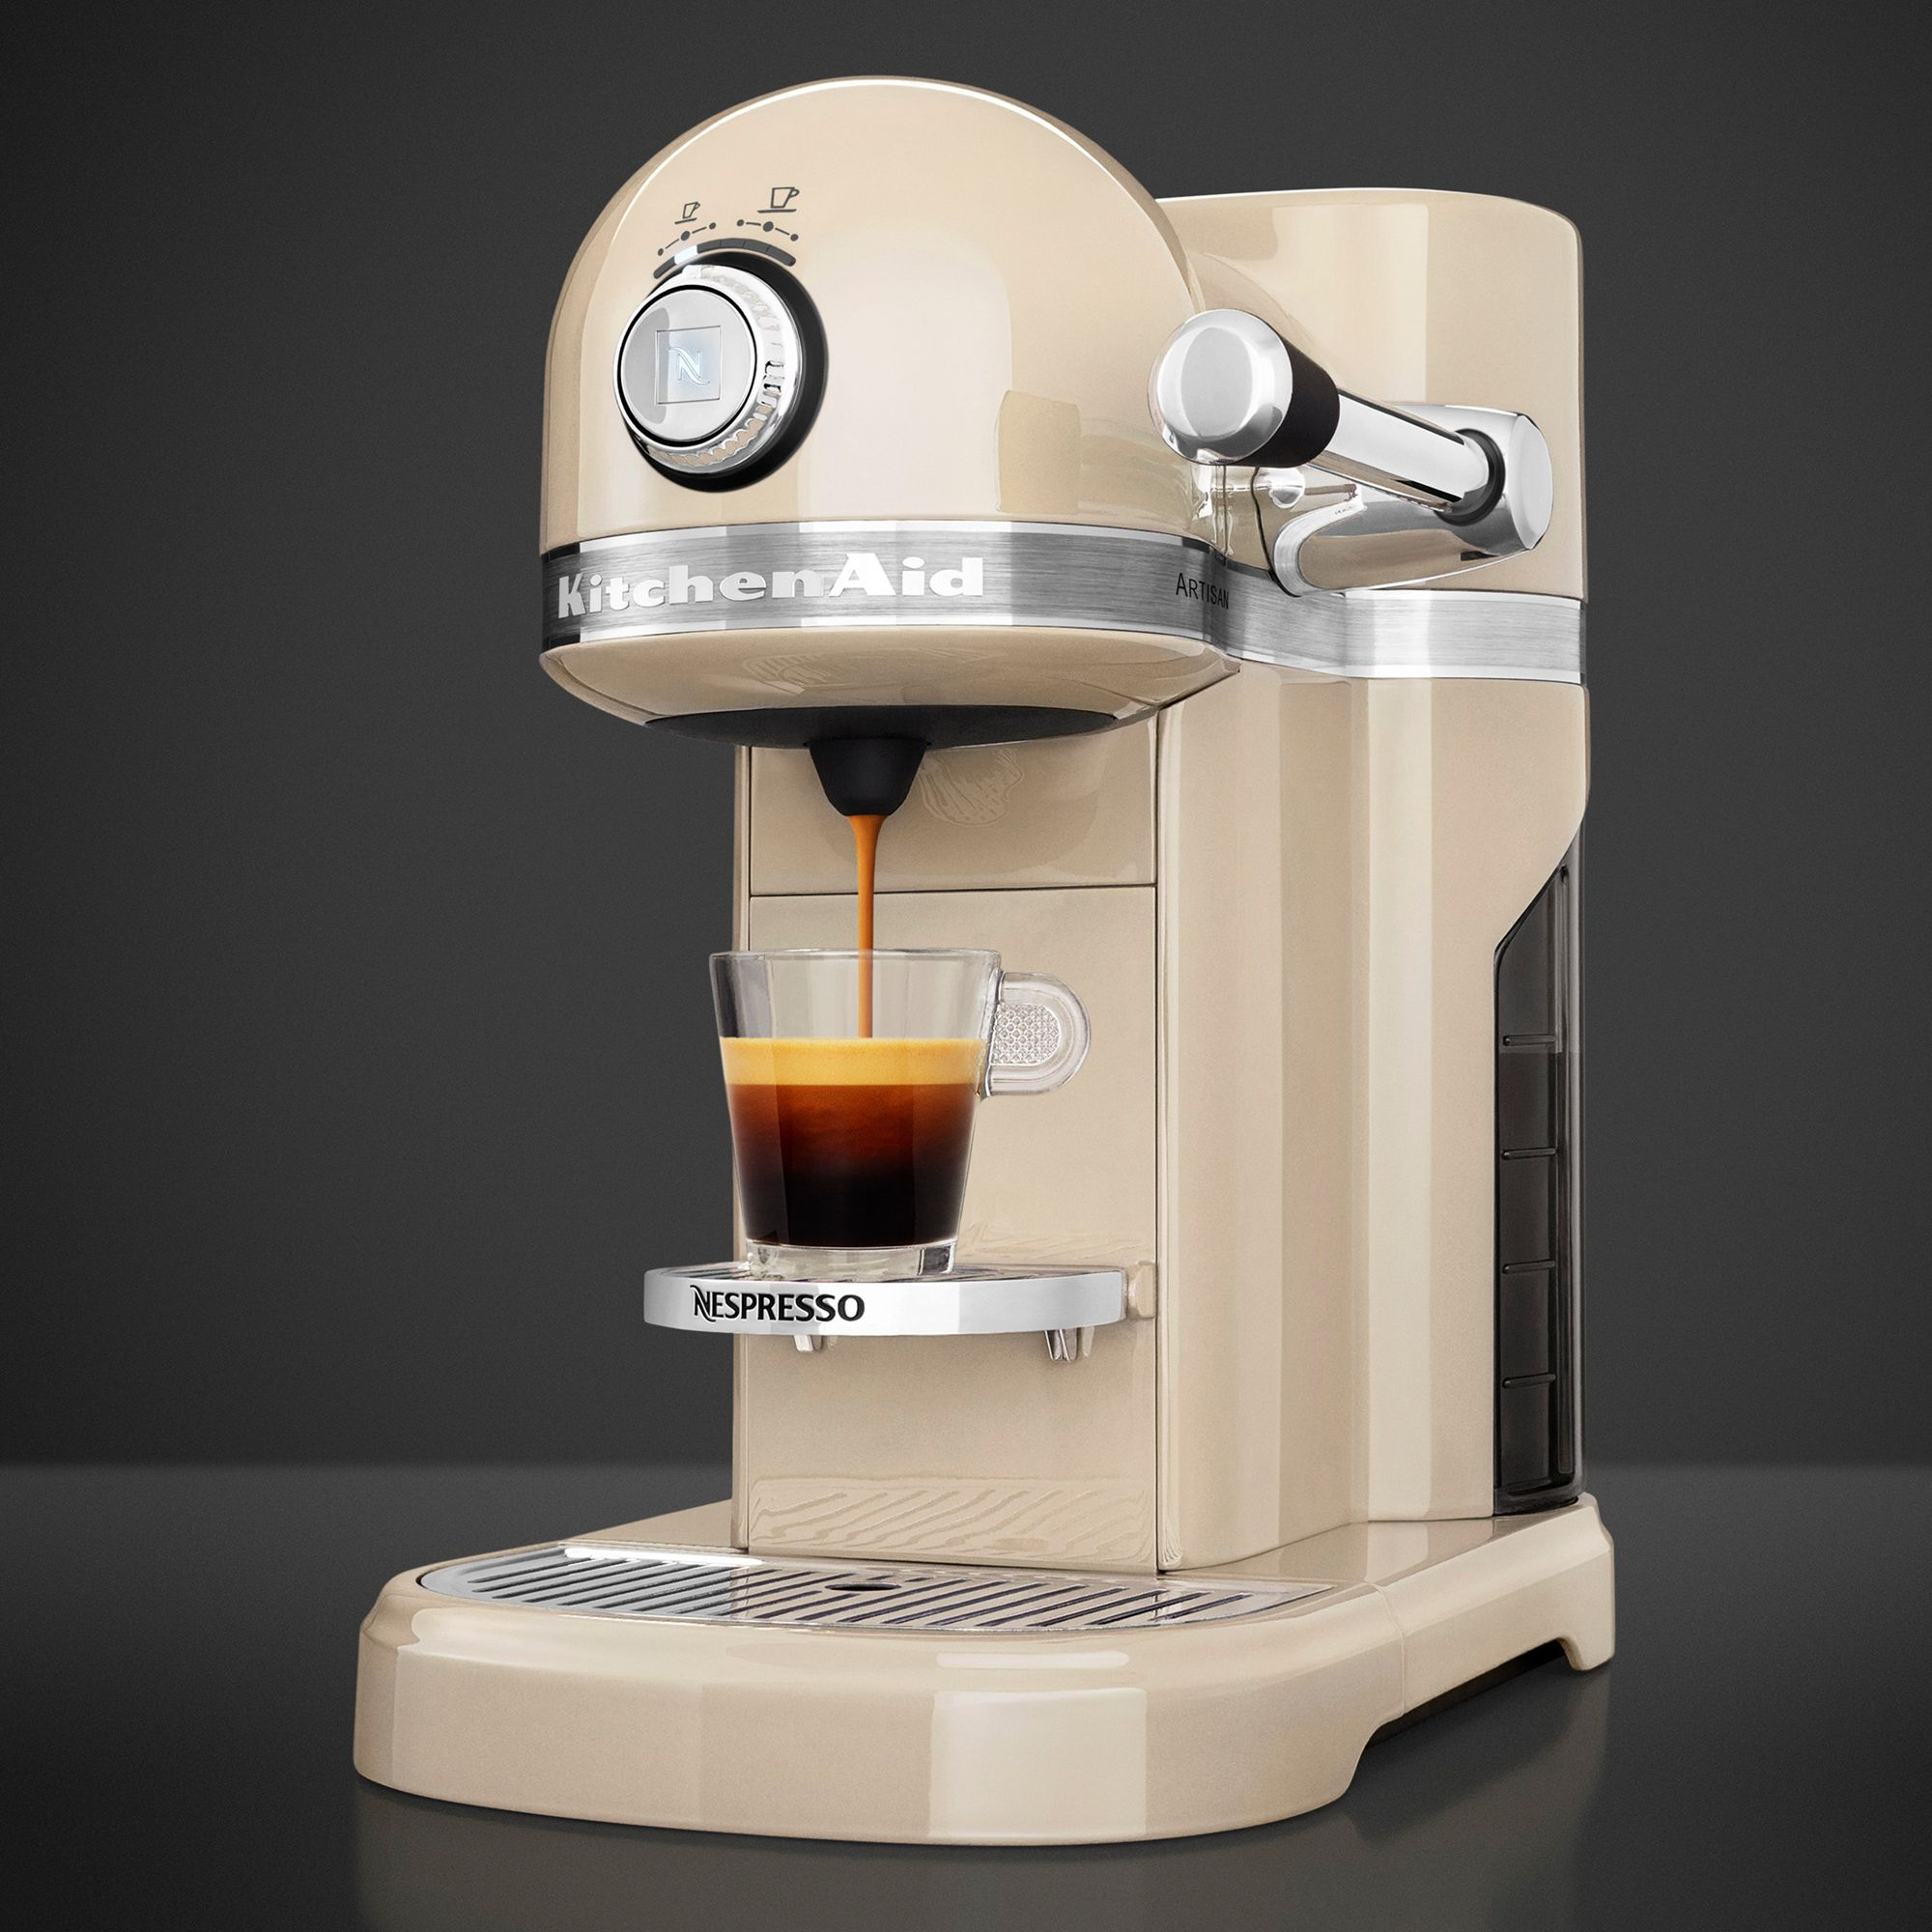 Italian Coffee Maker John Lewis : Buy Nespresso Artisan Coffee Machine by KitchenAid John Lewis